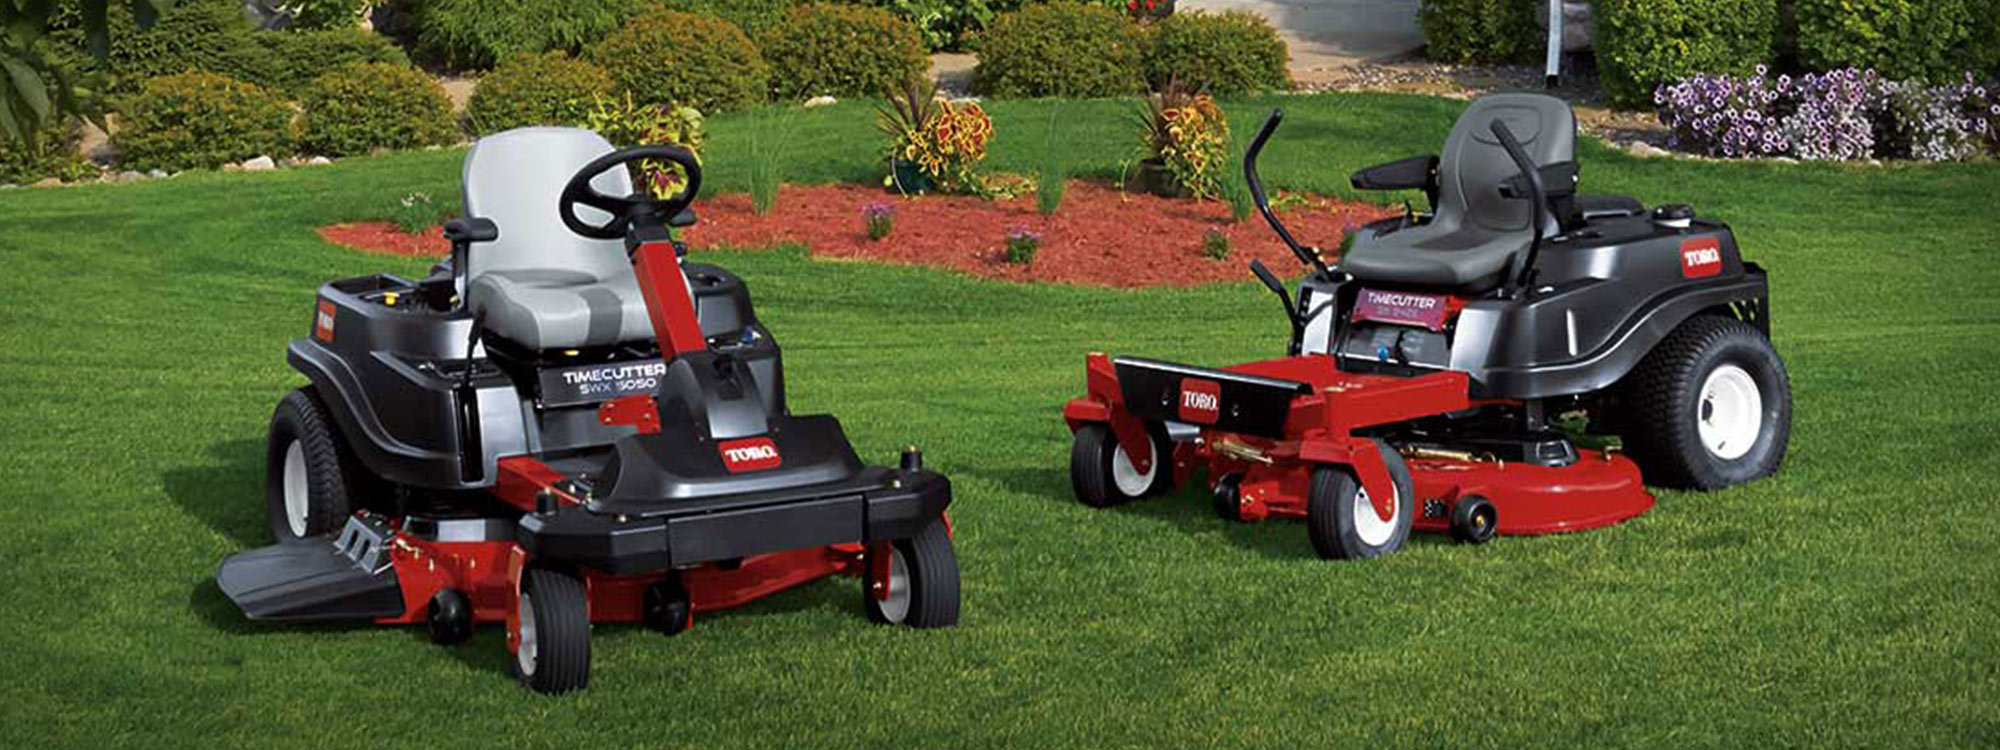 Two Toro timecutter mowers